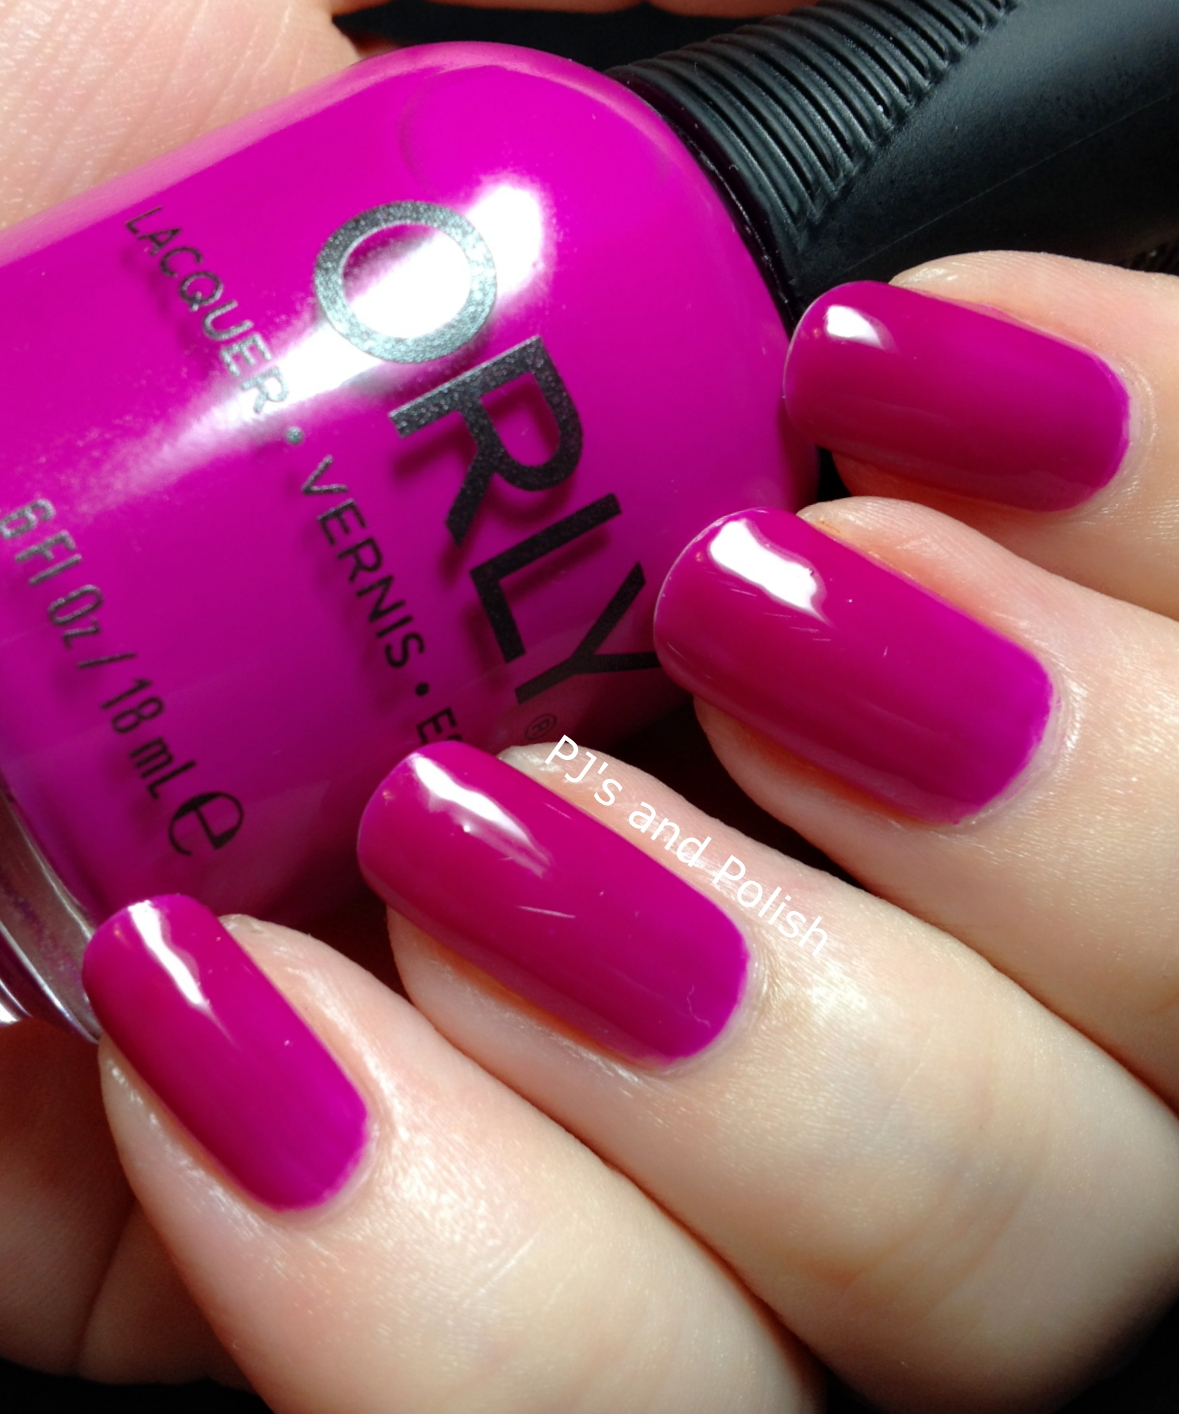 Swatch and Review Orly Purple Crush Jelly Crelly Creme HK Girl